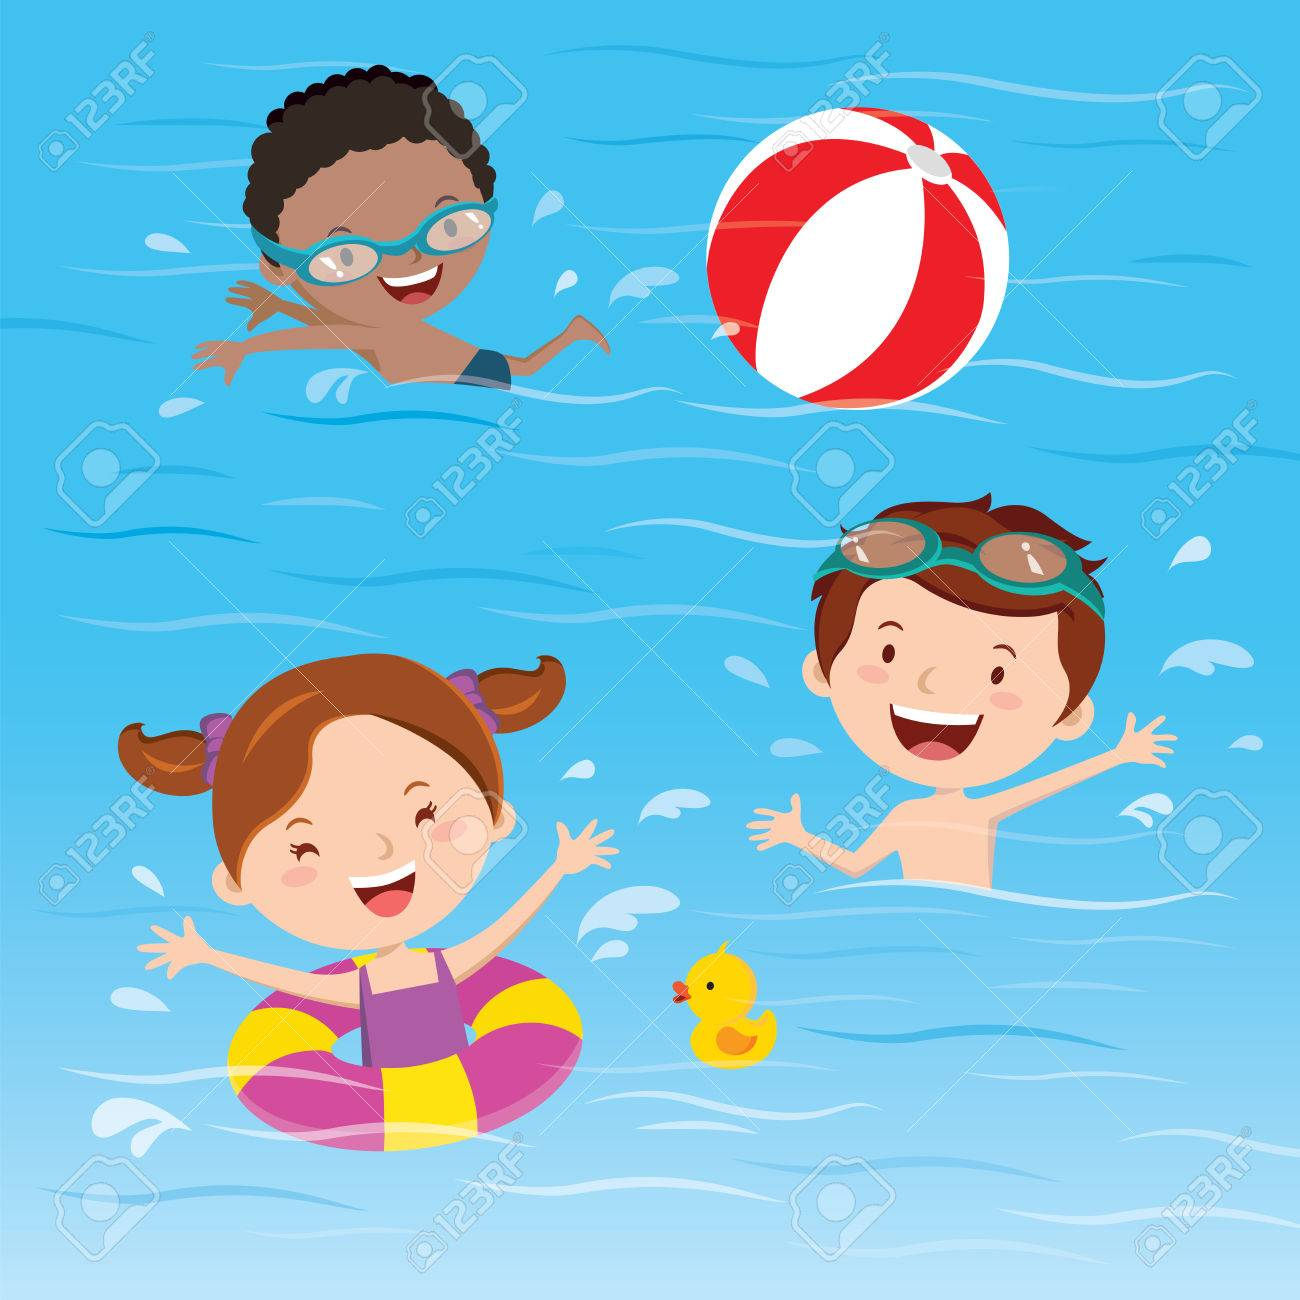 Kids having fun in the swimming pool.